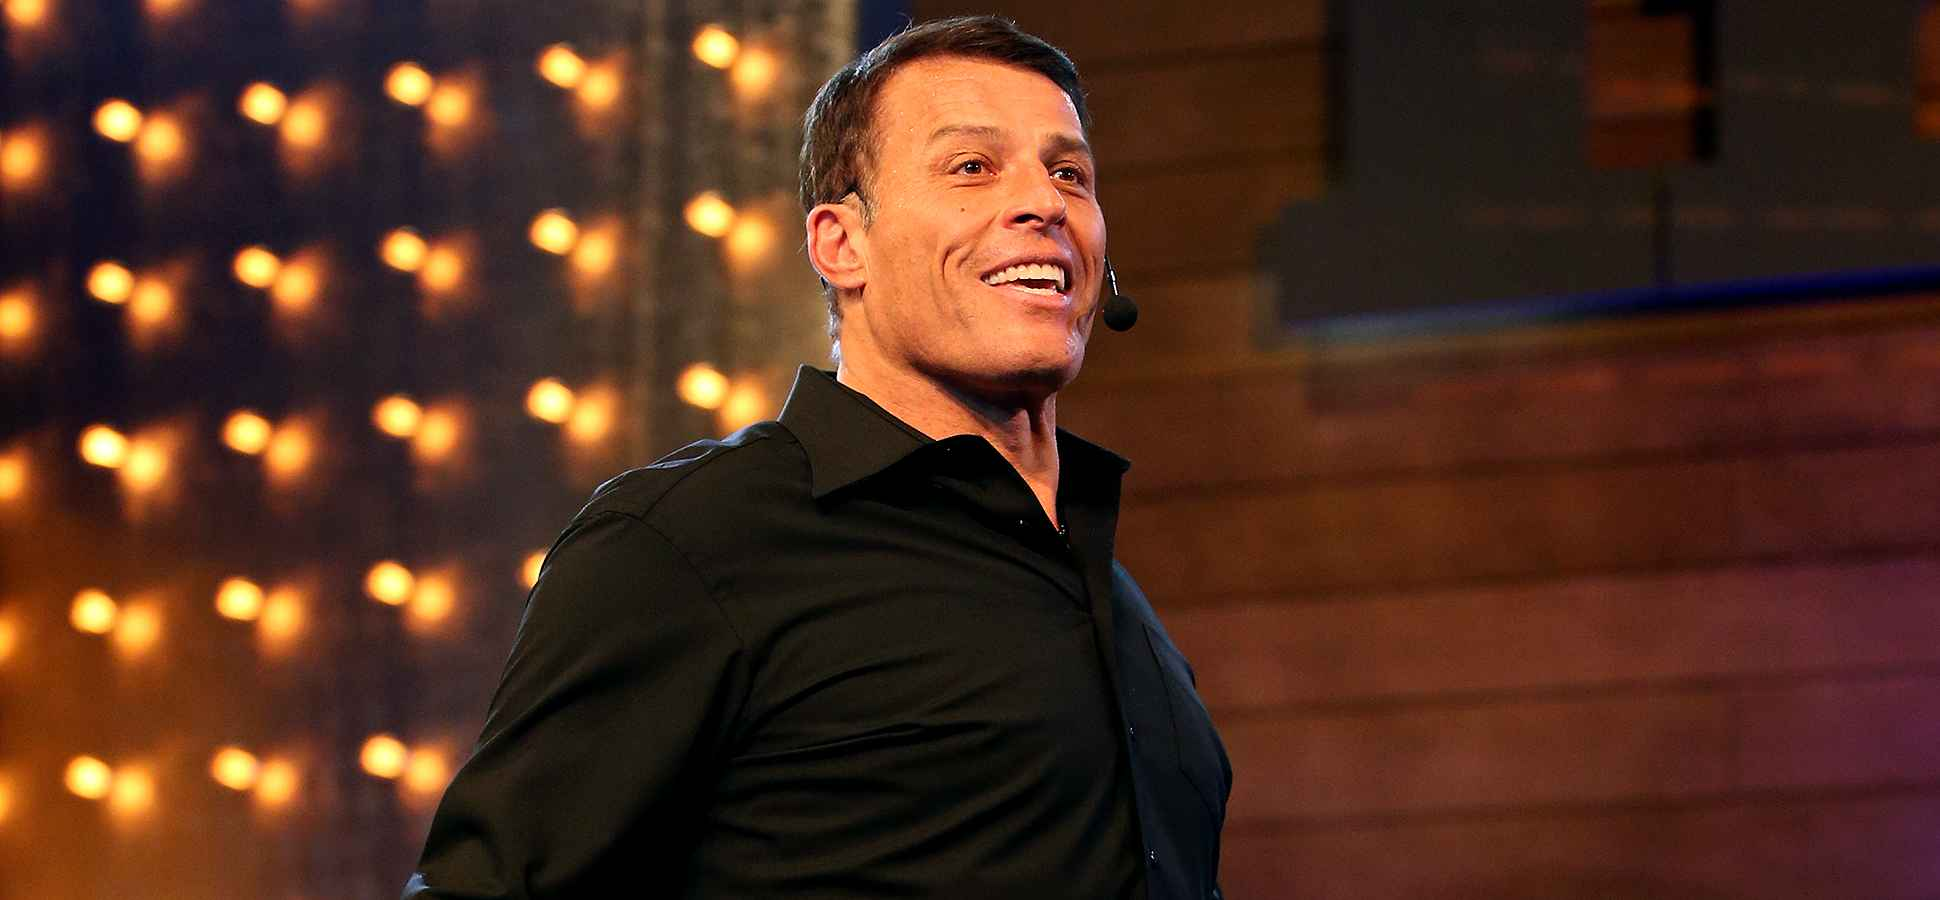 Tony Robbins: 6 Rules for Mastering the Game of Life